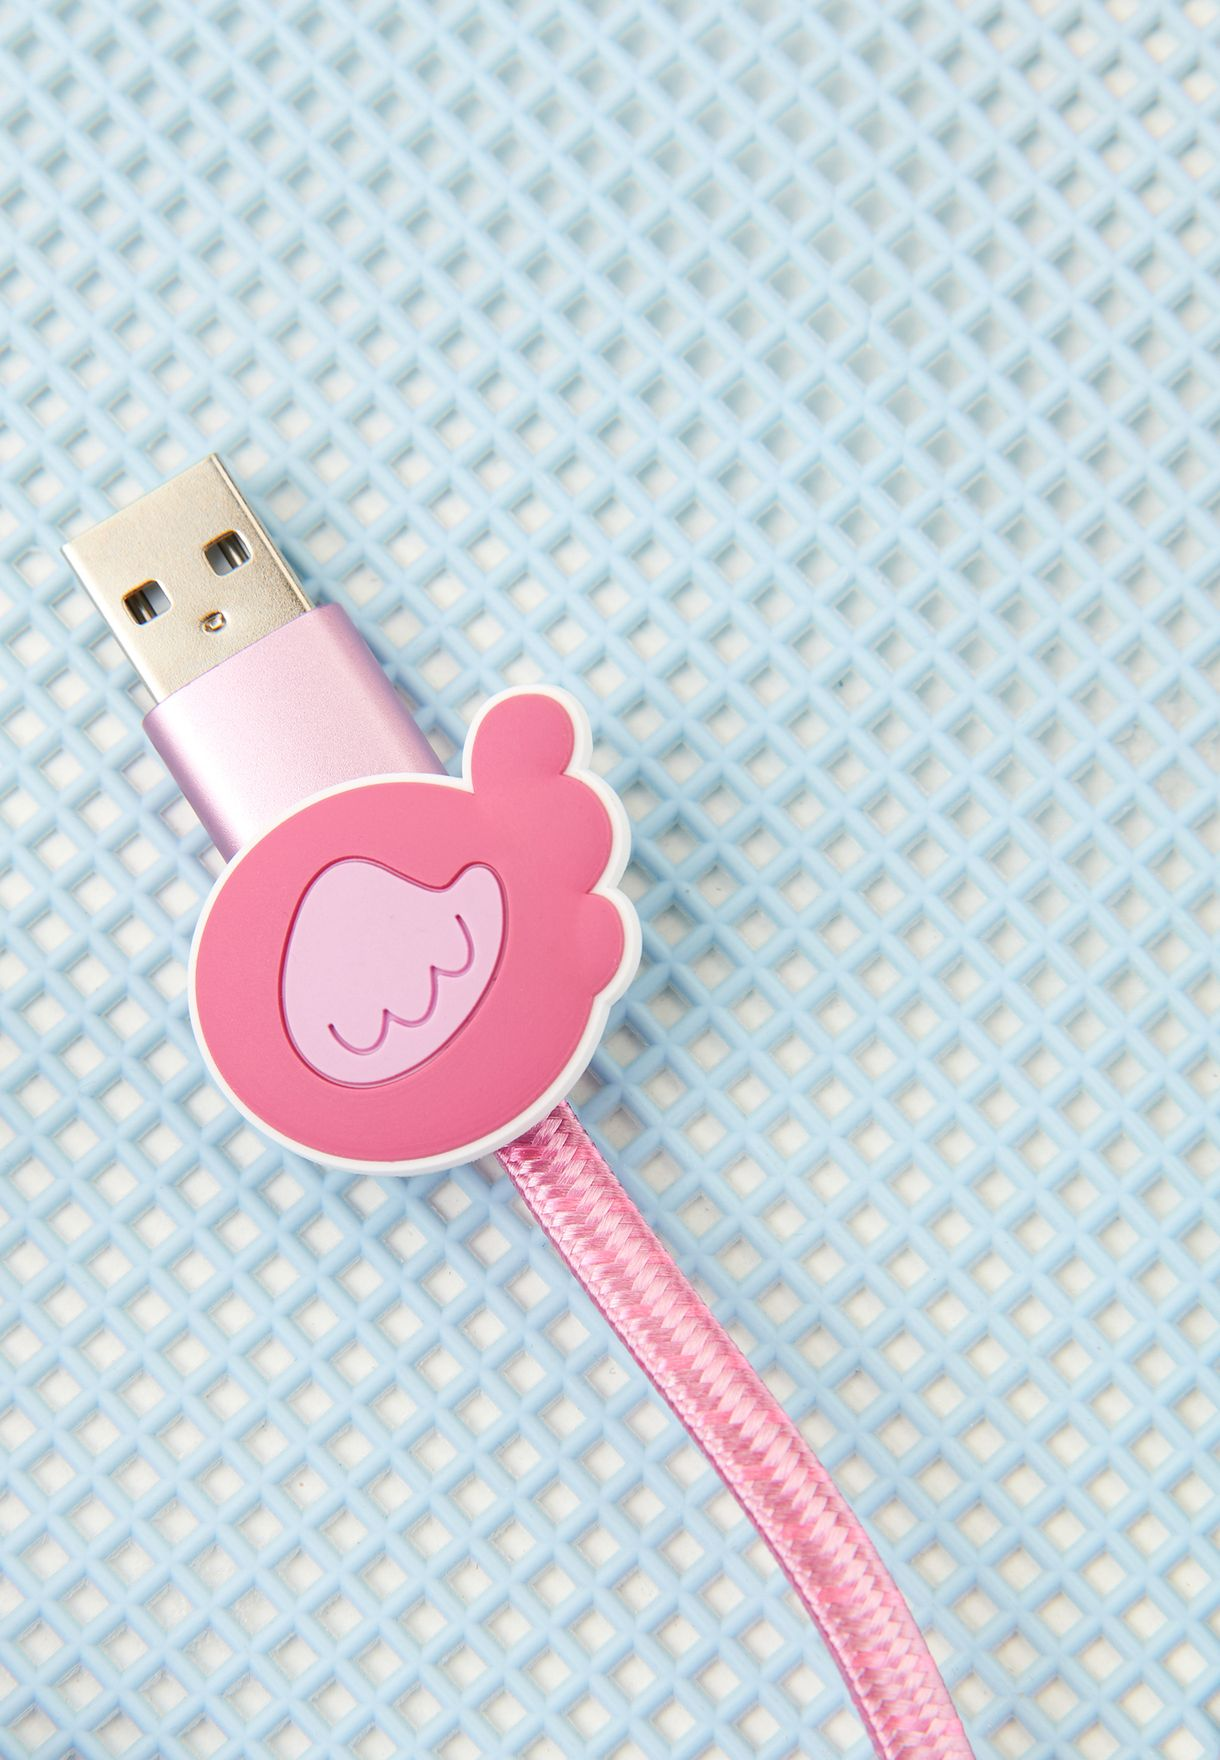 3-in-1 Flamingo Charging Cable